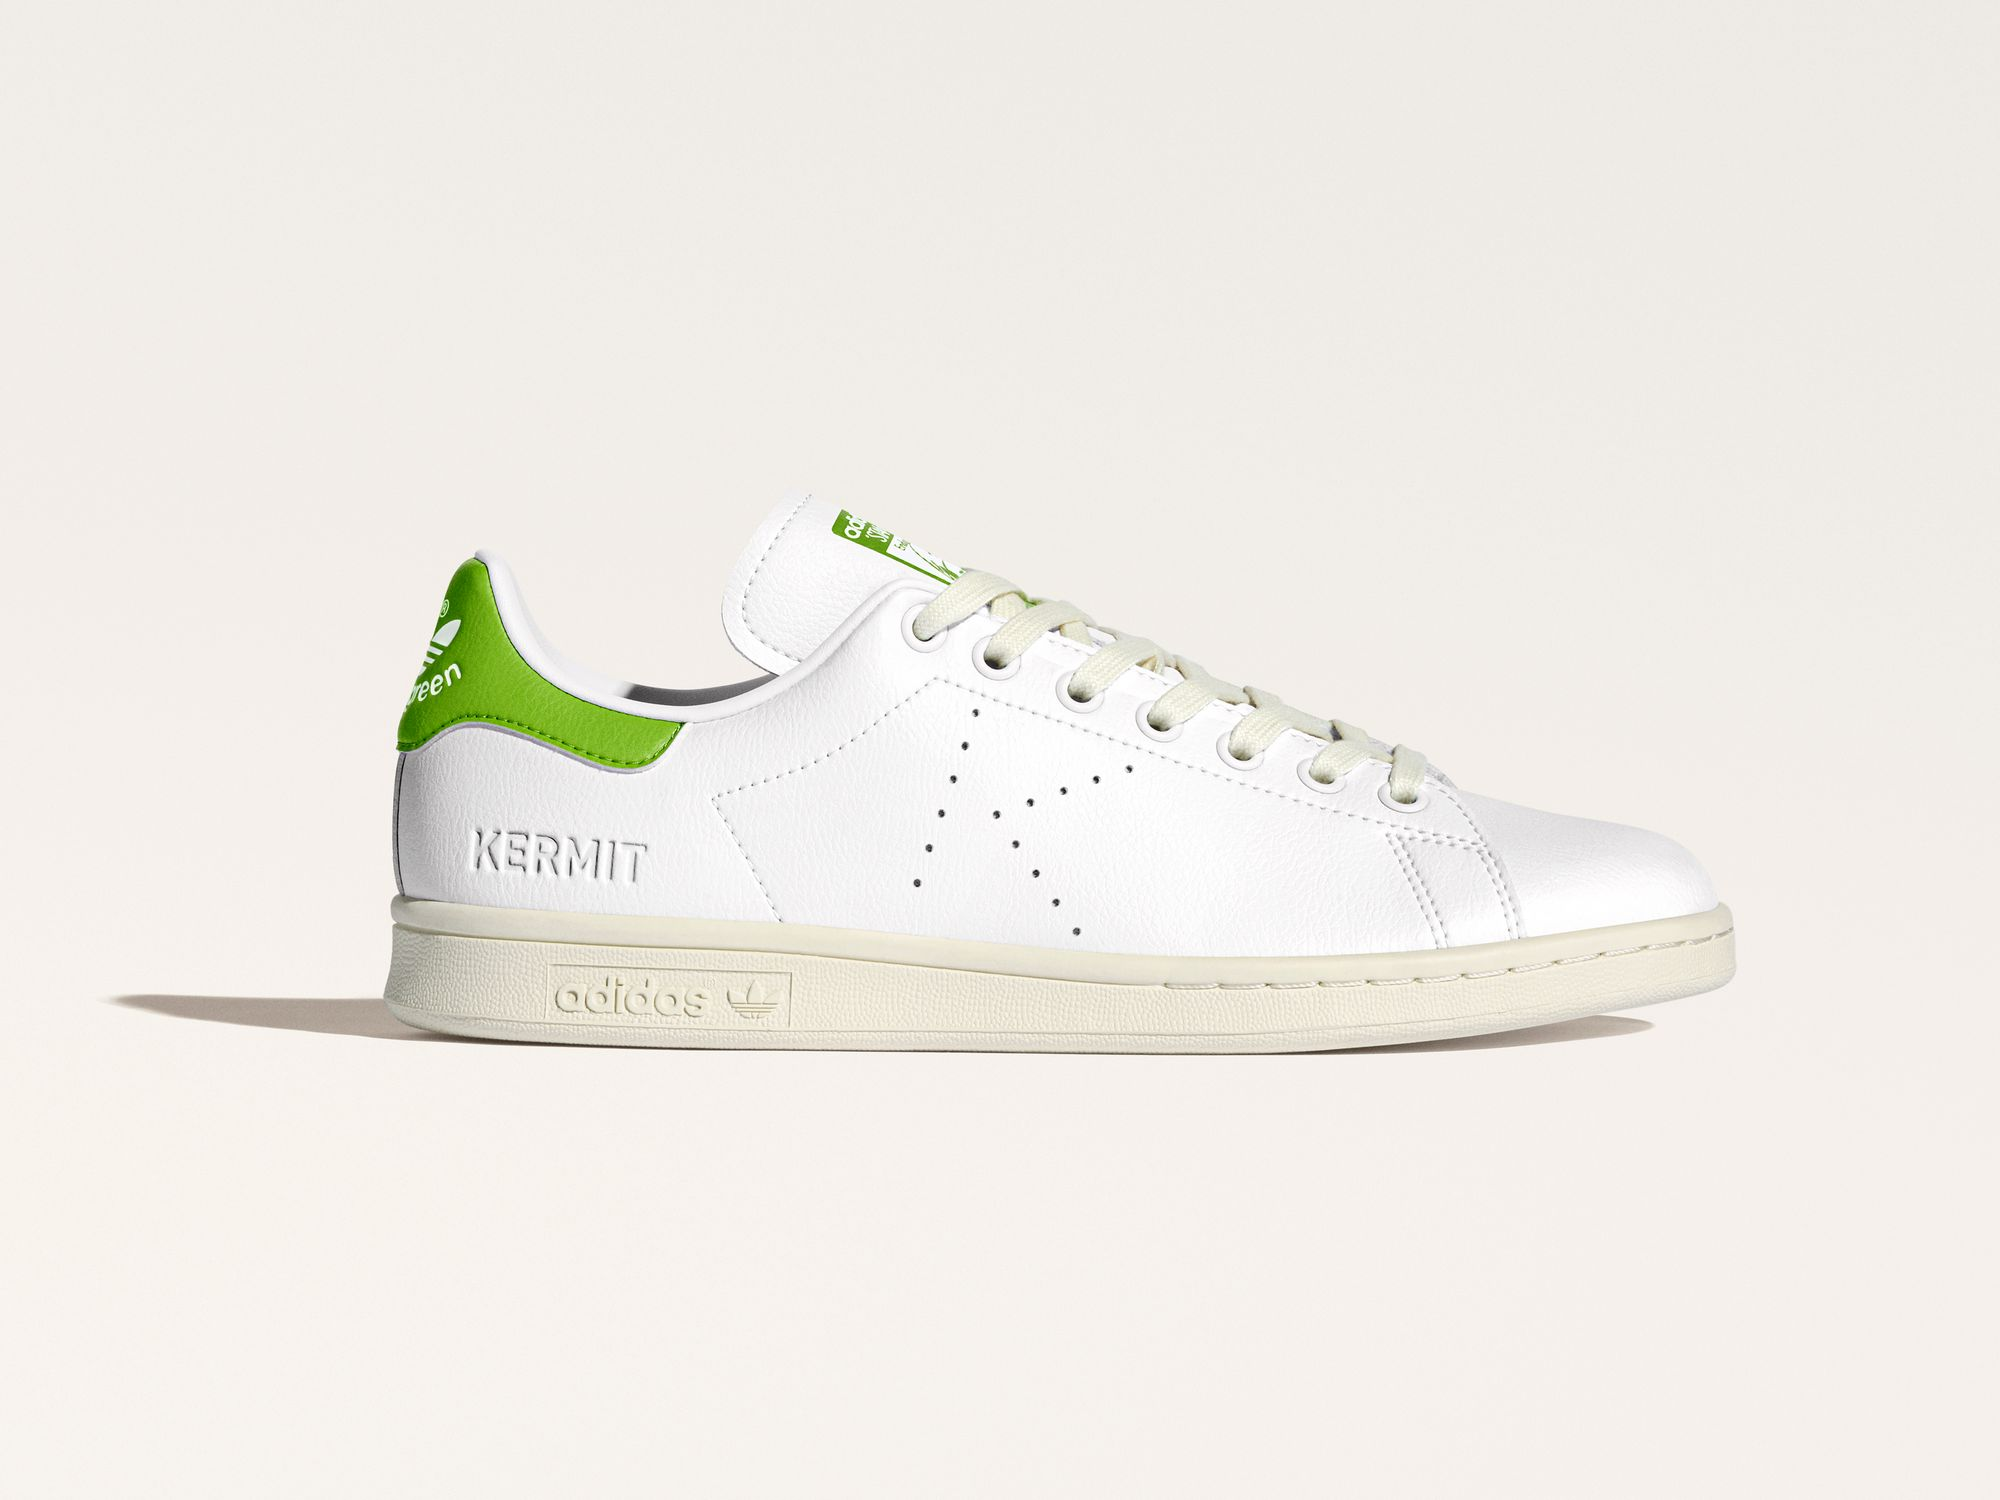 """adidas Originals x Disney Kermit The Frog """"Perforated K"""" - white/green - FY5460"""